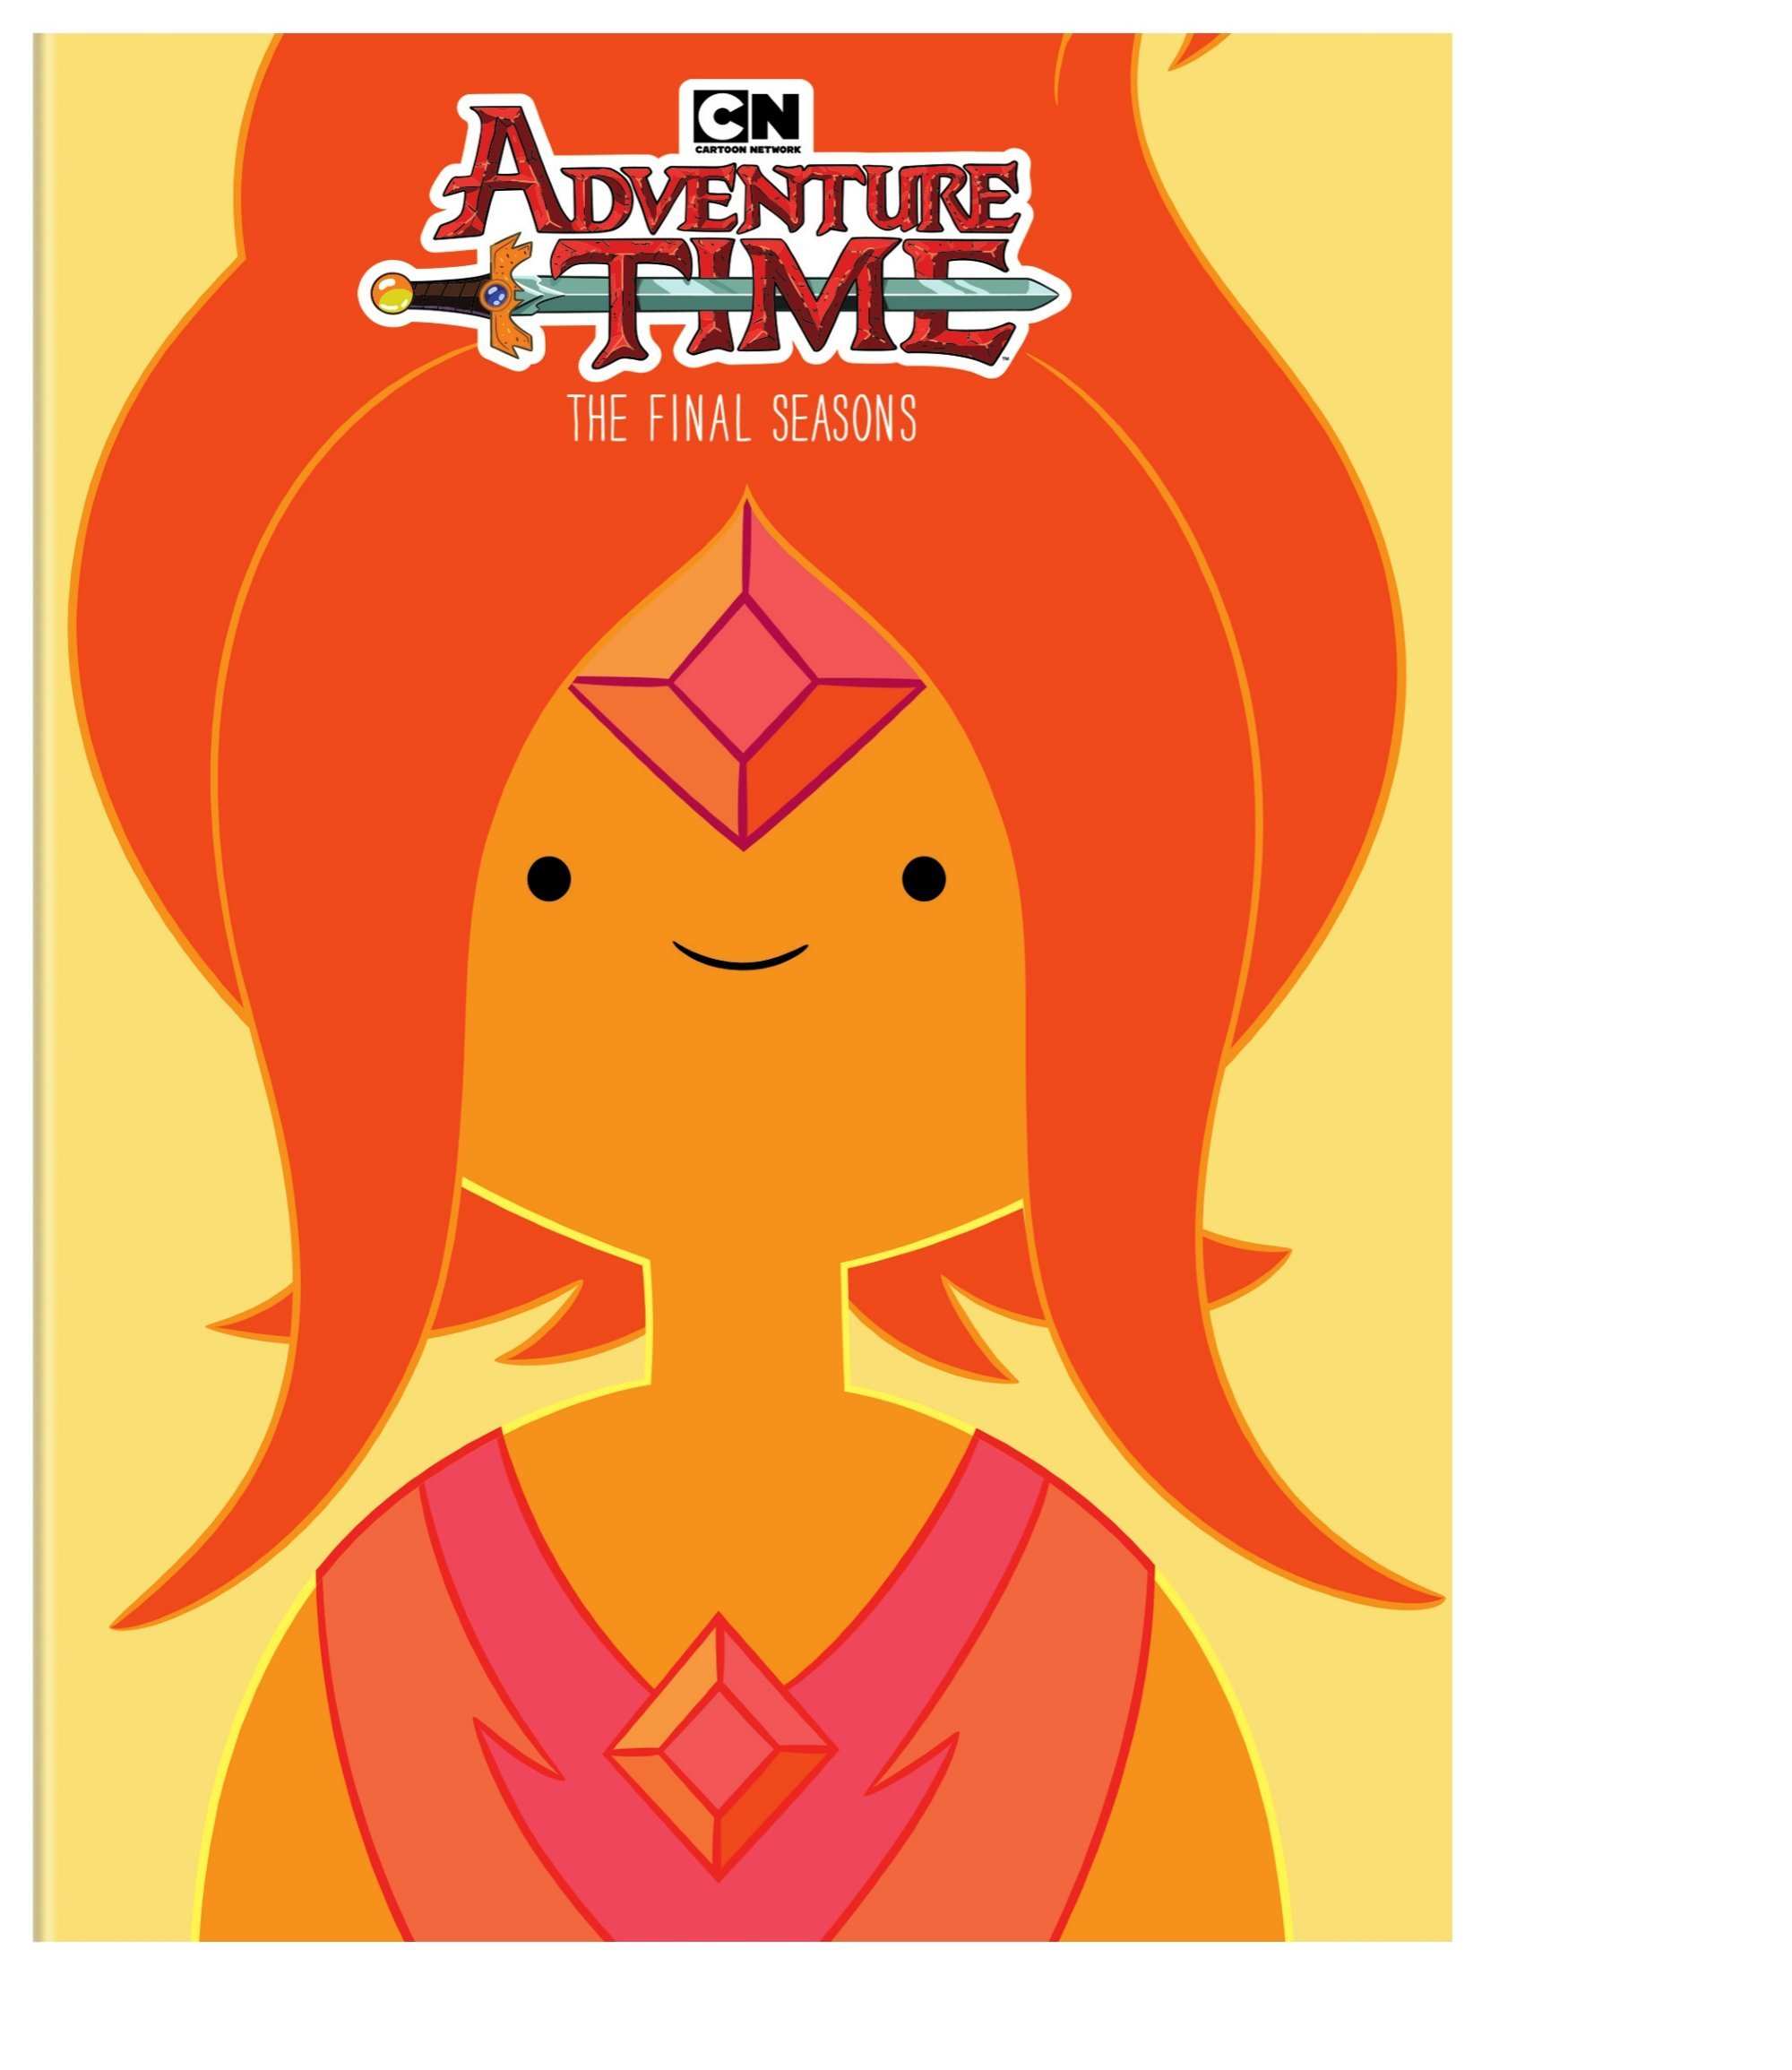 DVD : Adventure Time: The Final Seasons (Boxed Set, Dolby, AC-3, Slipsleeve Packaging, 4PC)